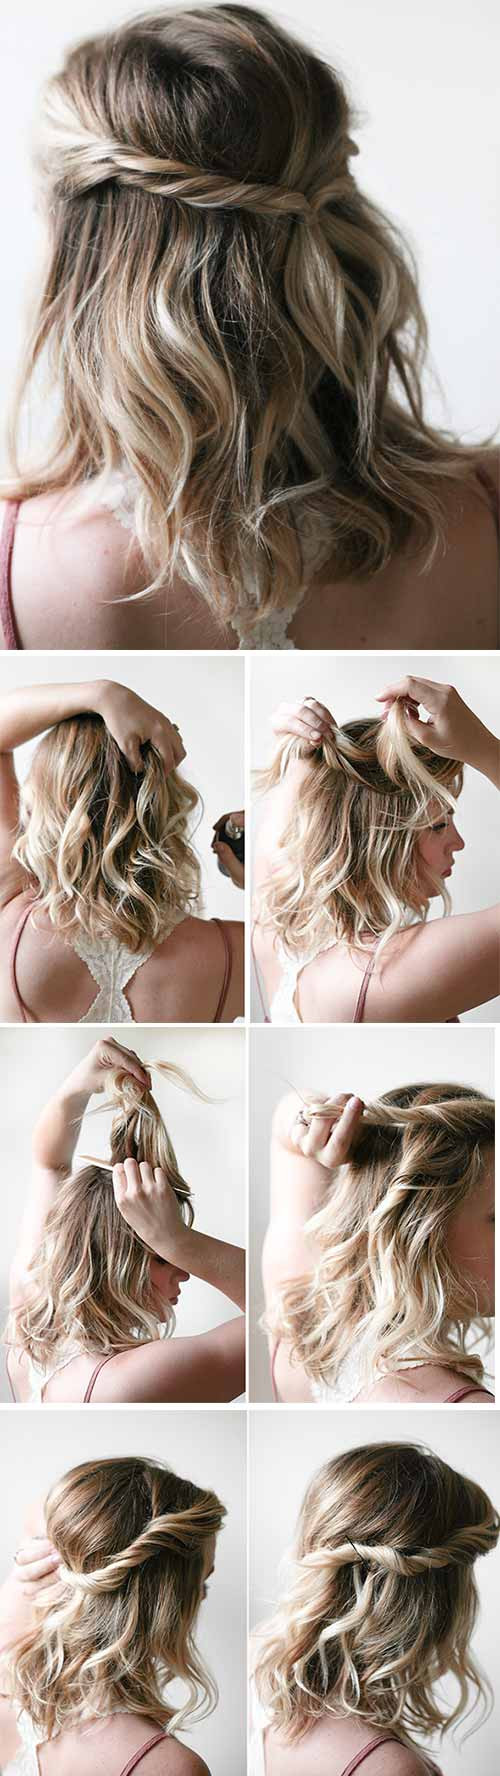 Easy Hairstyles For Short Hair To Do At Home Step By Step  20 Incredible DIY Short Hairstyles A Step By Step Guide